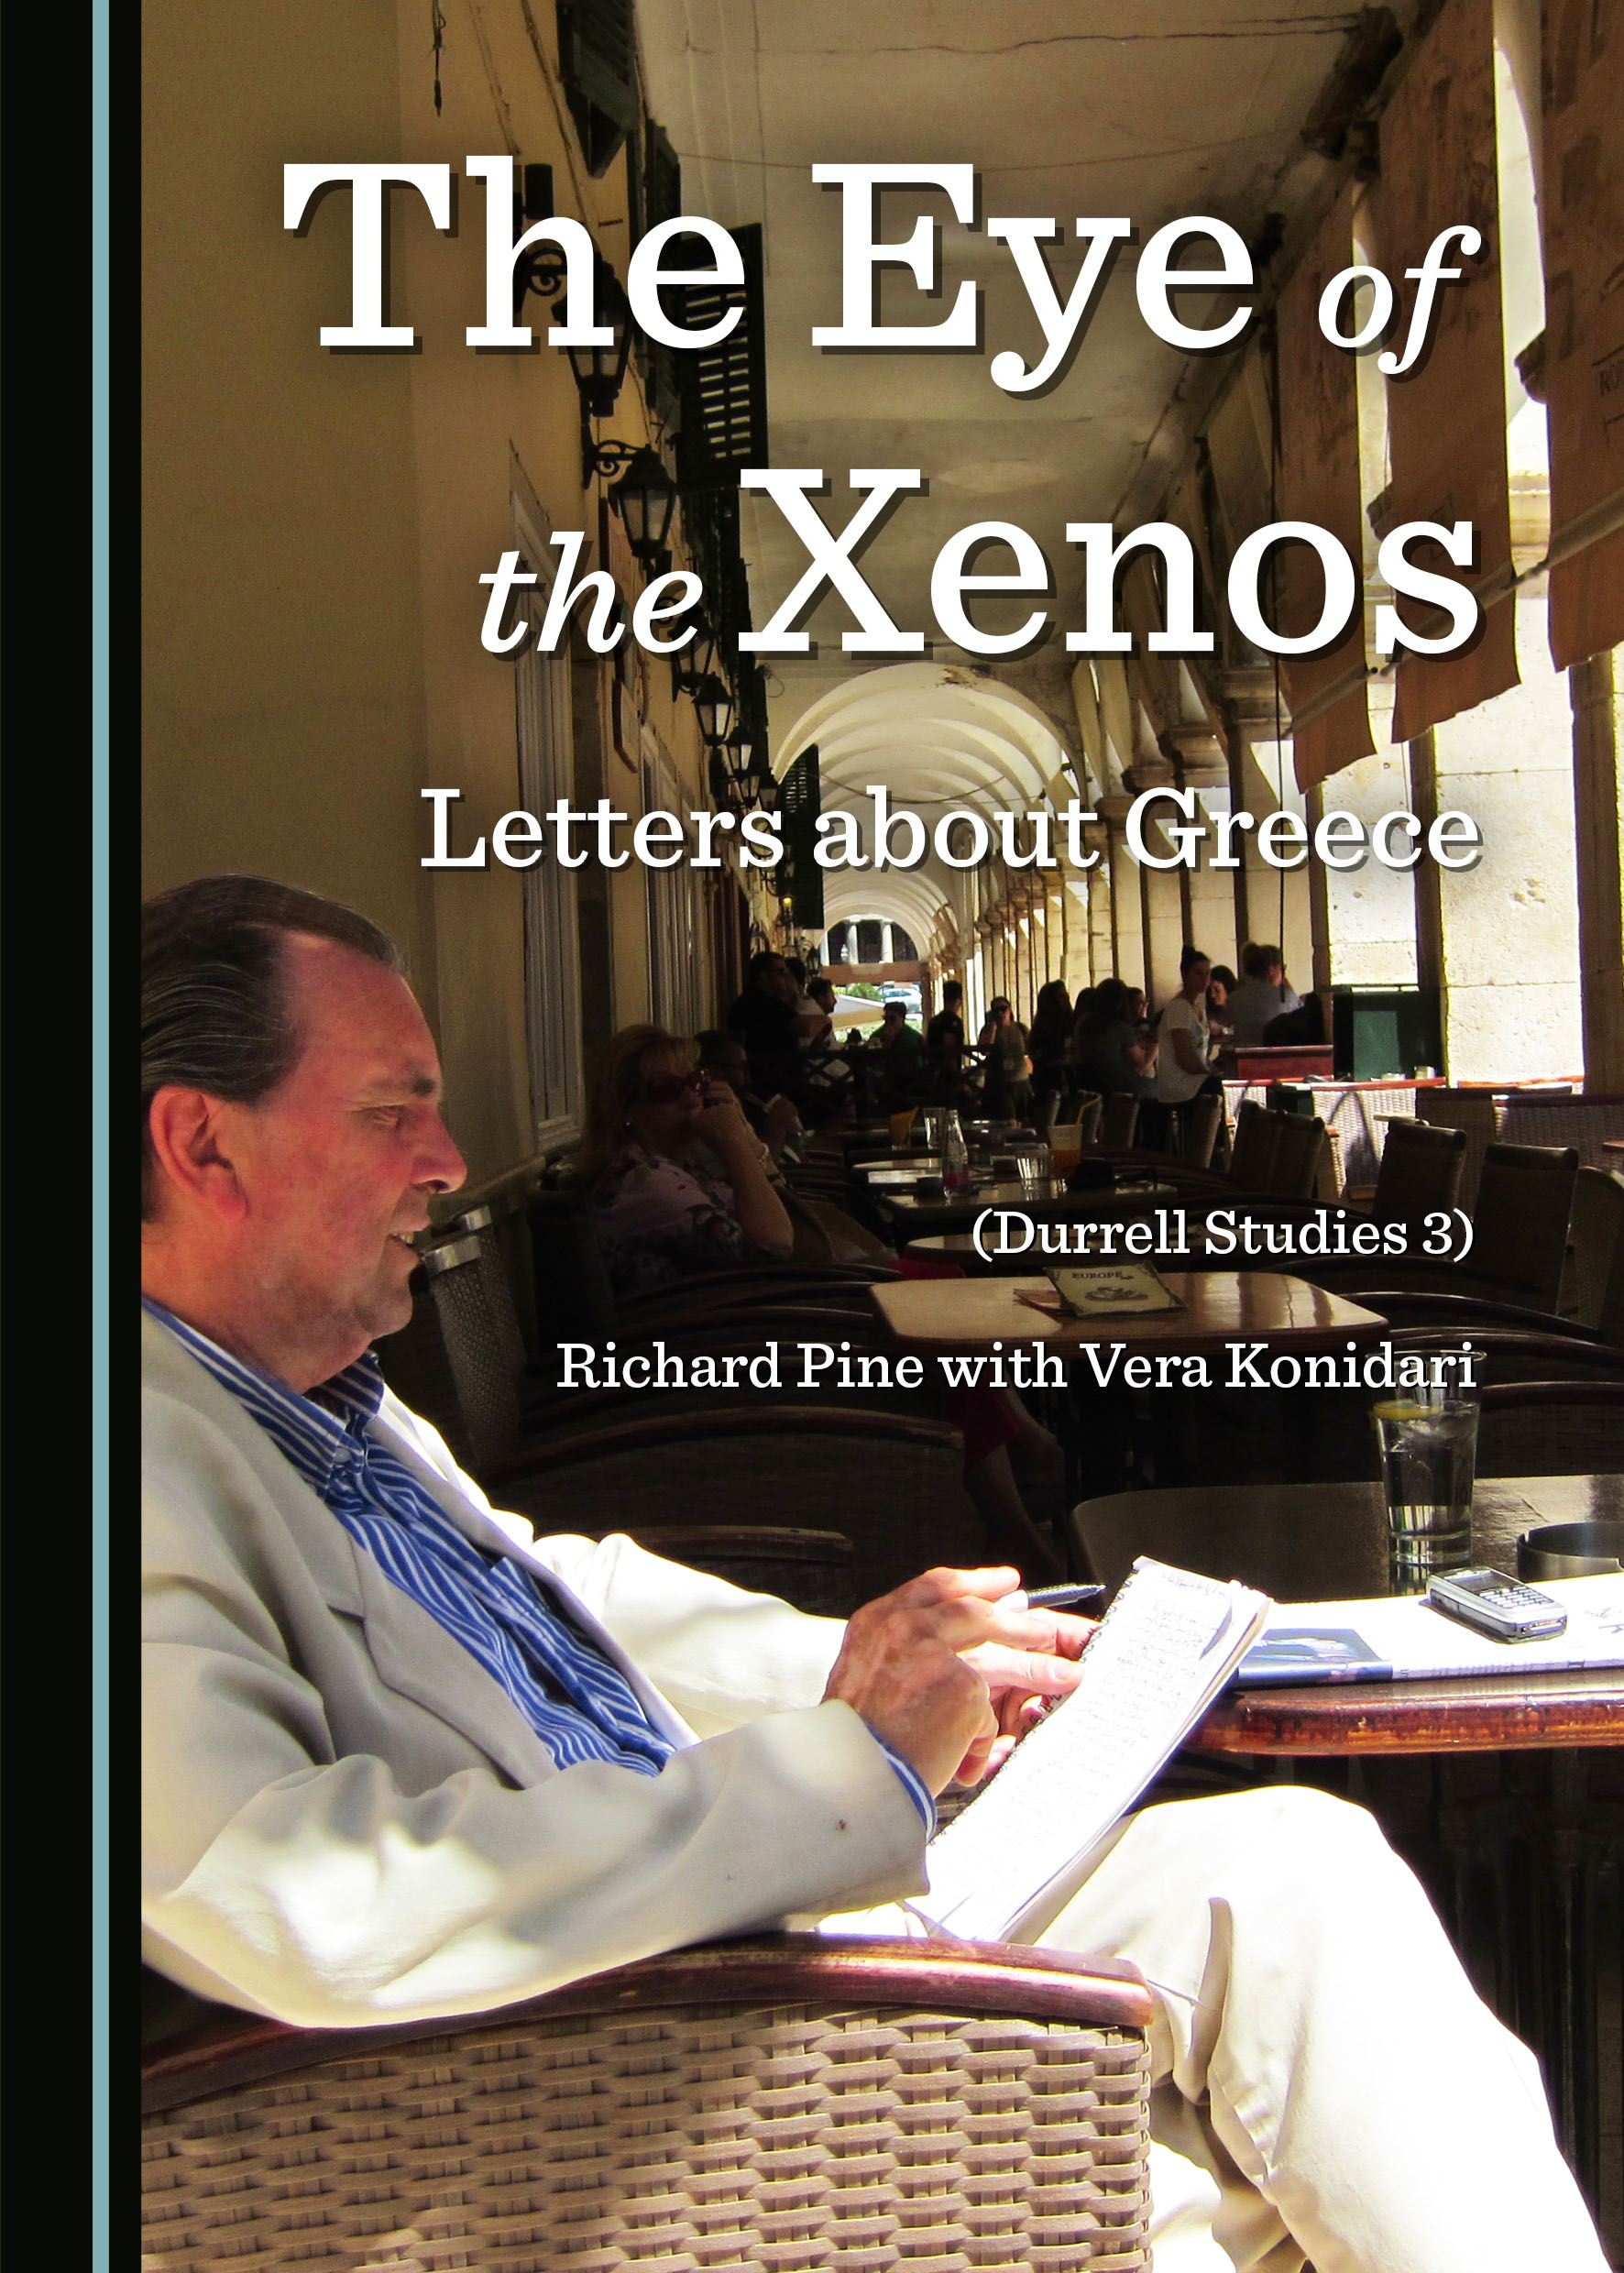 The Eye of the Xenos, Letters about Greece (Durrell Studies 3)